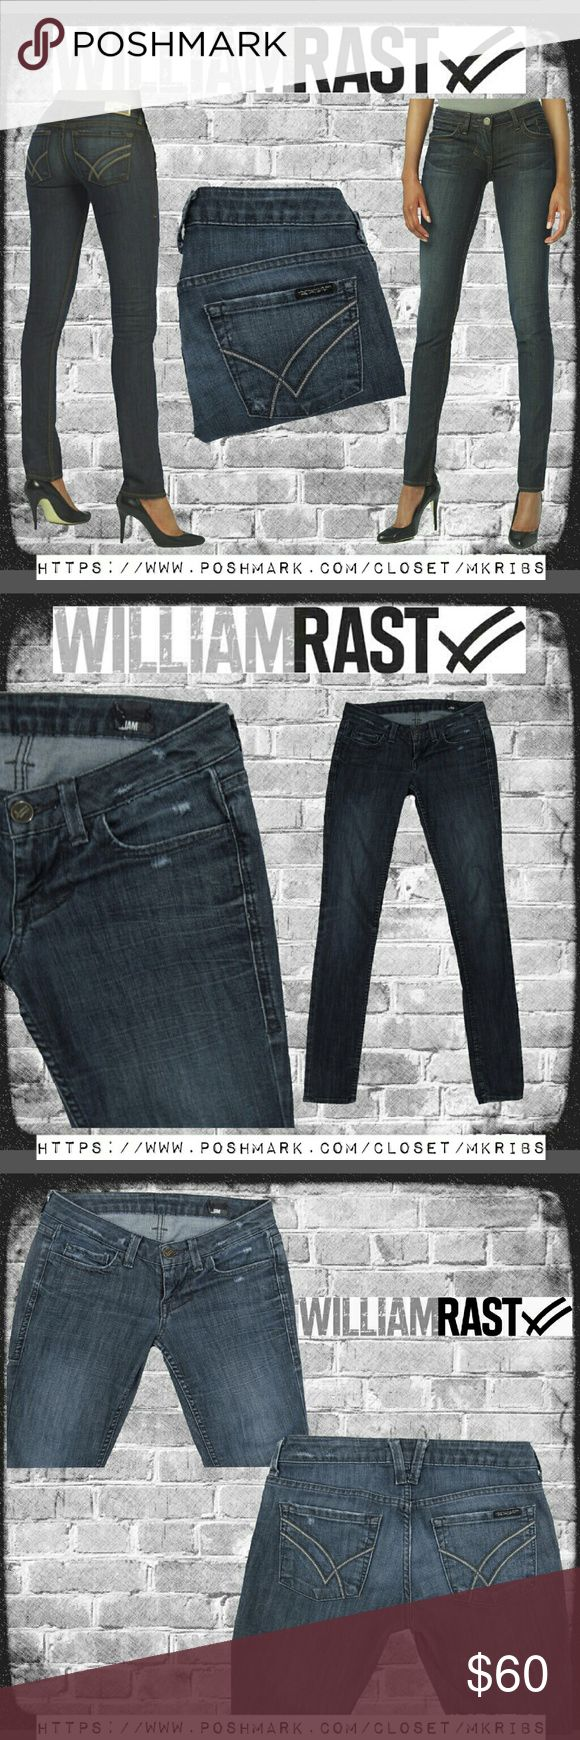 💞 William Rast Jerri Ultra Skinny low rise jeans Perfect with boots or heels, these cute 'Jerri' ultra skinny, low rise jeans are so comfy because they have the perfect amount of stretch.  Jeans modeled in first photo is stock of the exact style but not wash. All photos shown (not on model) were taken by me and of the actual item for sale. The center of 1st photo and 2nd photo most accurately show the wash. Measurements, fabric content, and style codes in last photo. NO TRADES PLEASE…